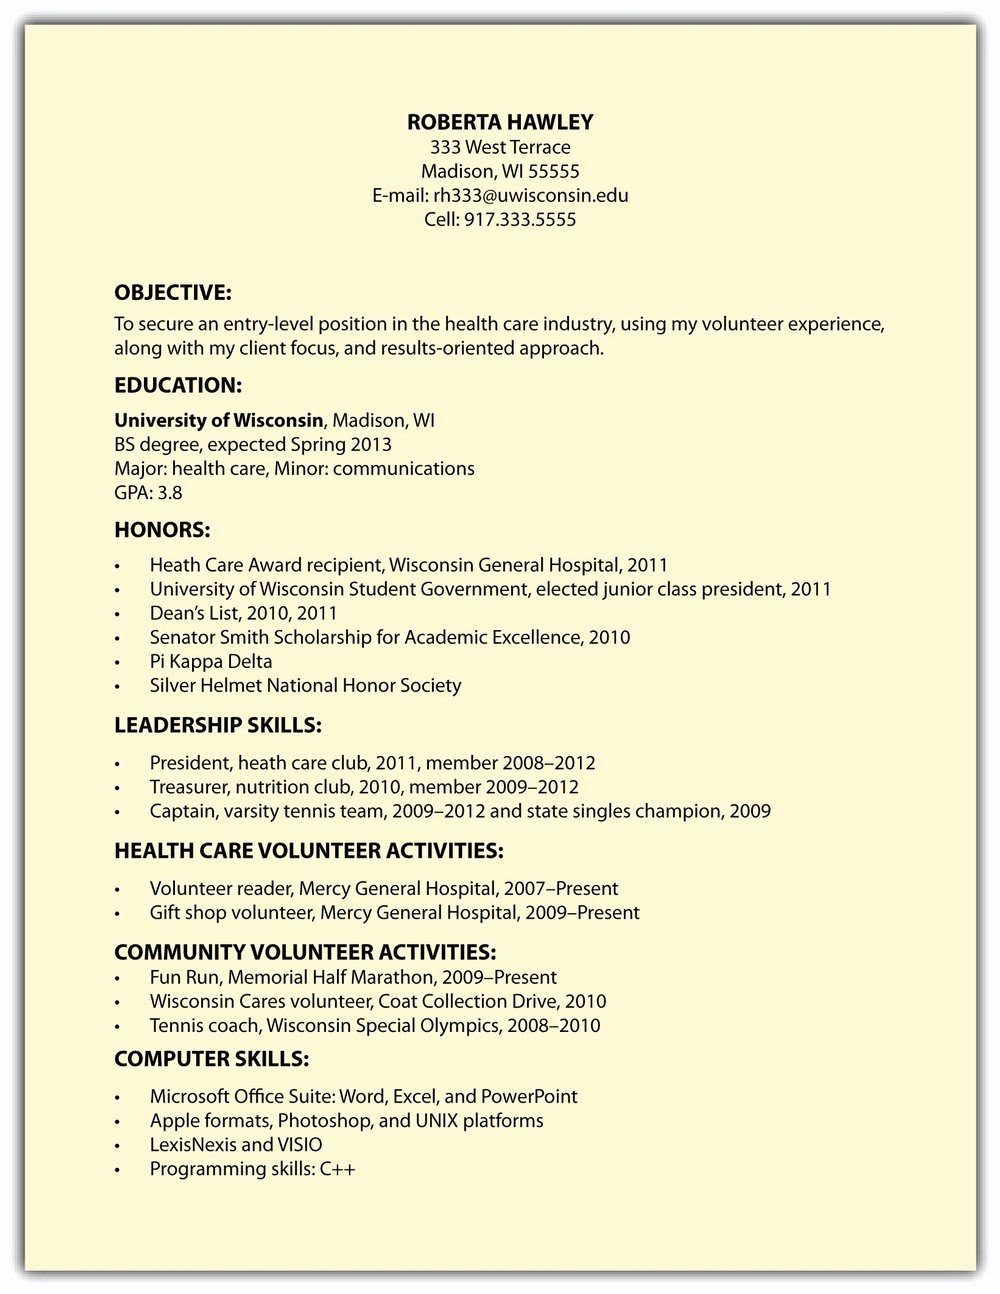 Simple Resume Examples for Jobs Inspirational Simple Resume format Sample for Job Resumes 2426